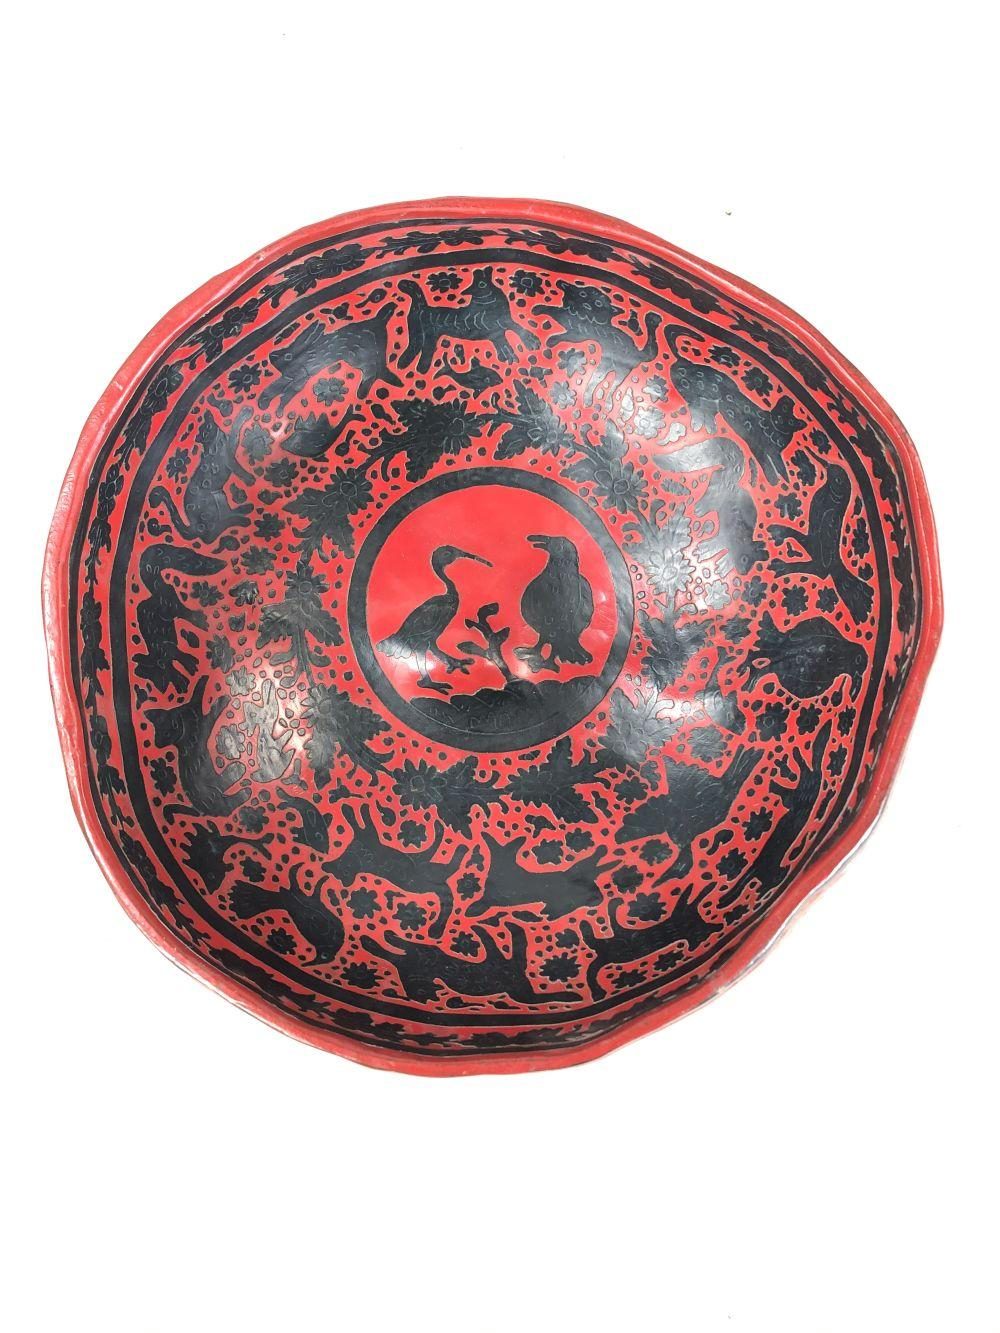 Mid 20th C. Mexican Gourd Lacquered Bowl Depicting Lions